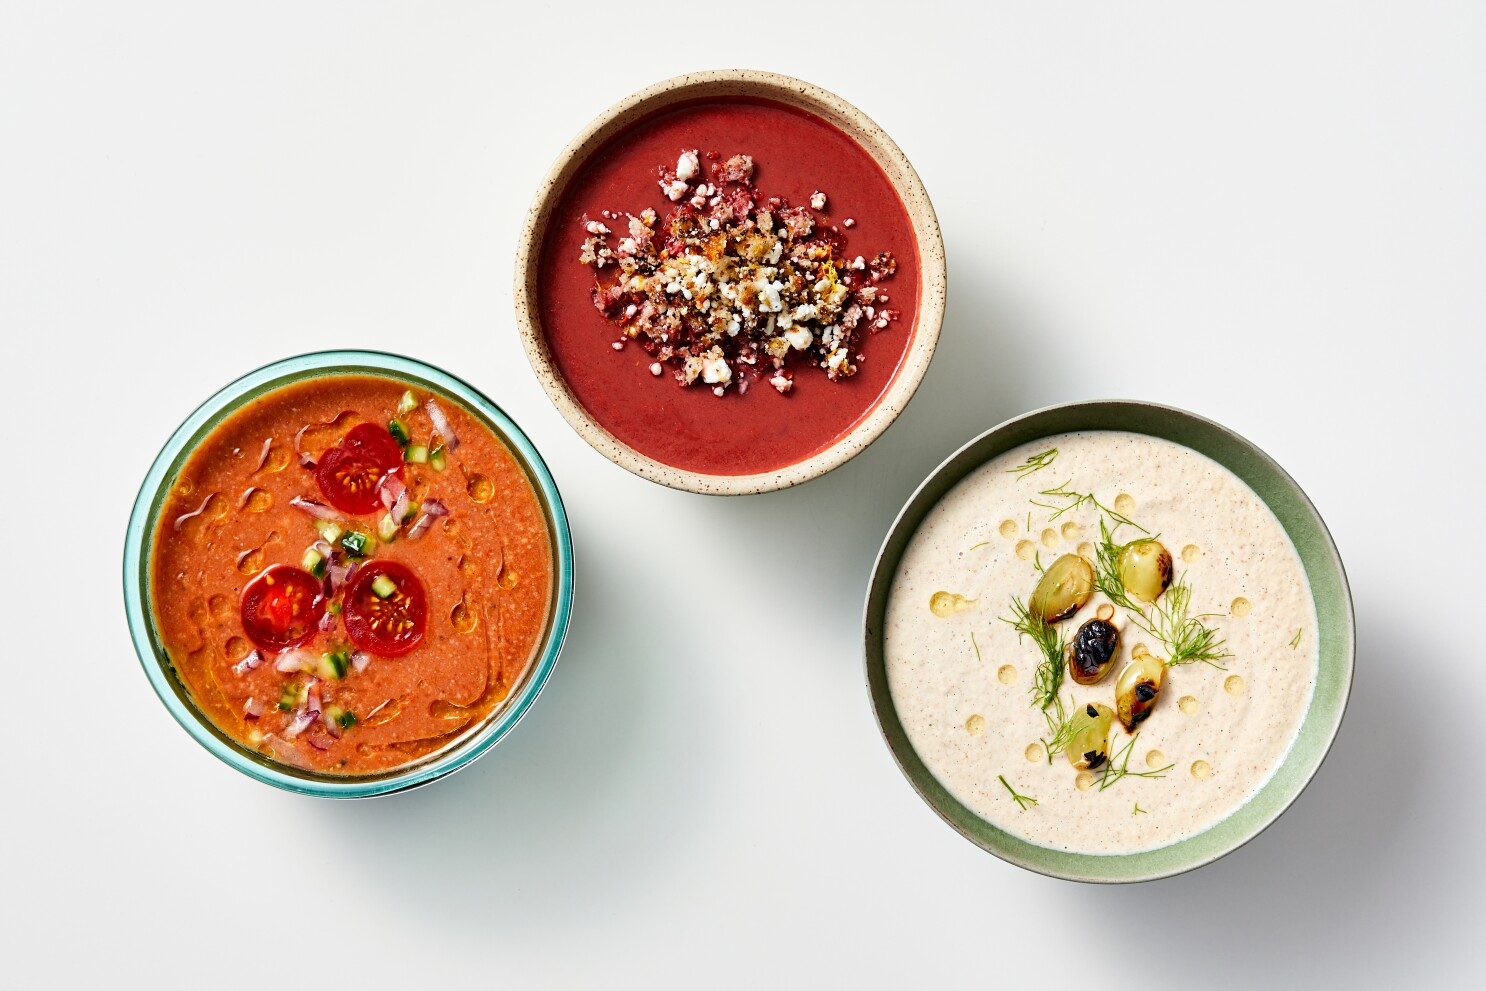 Stay chill once you grill with these 3 summer soups - Los Angeles Times